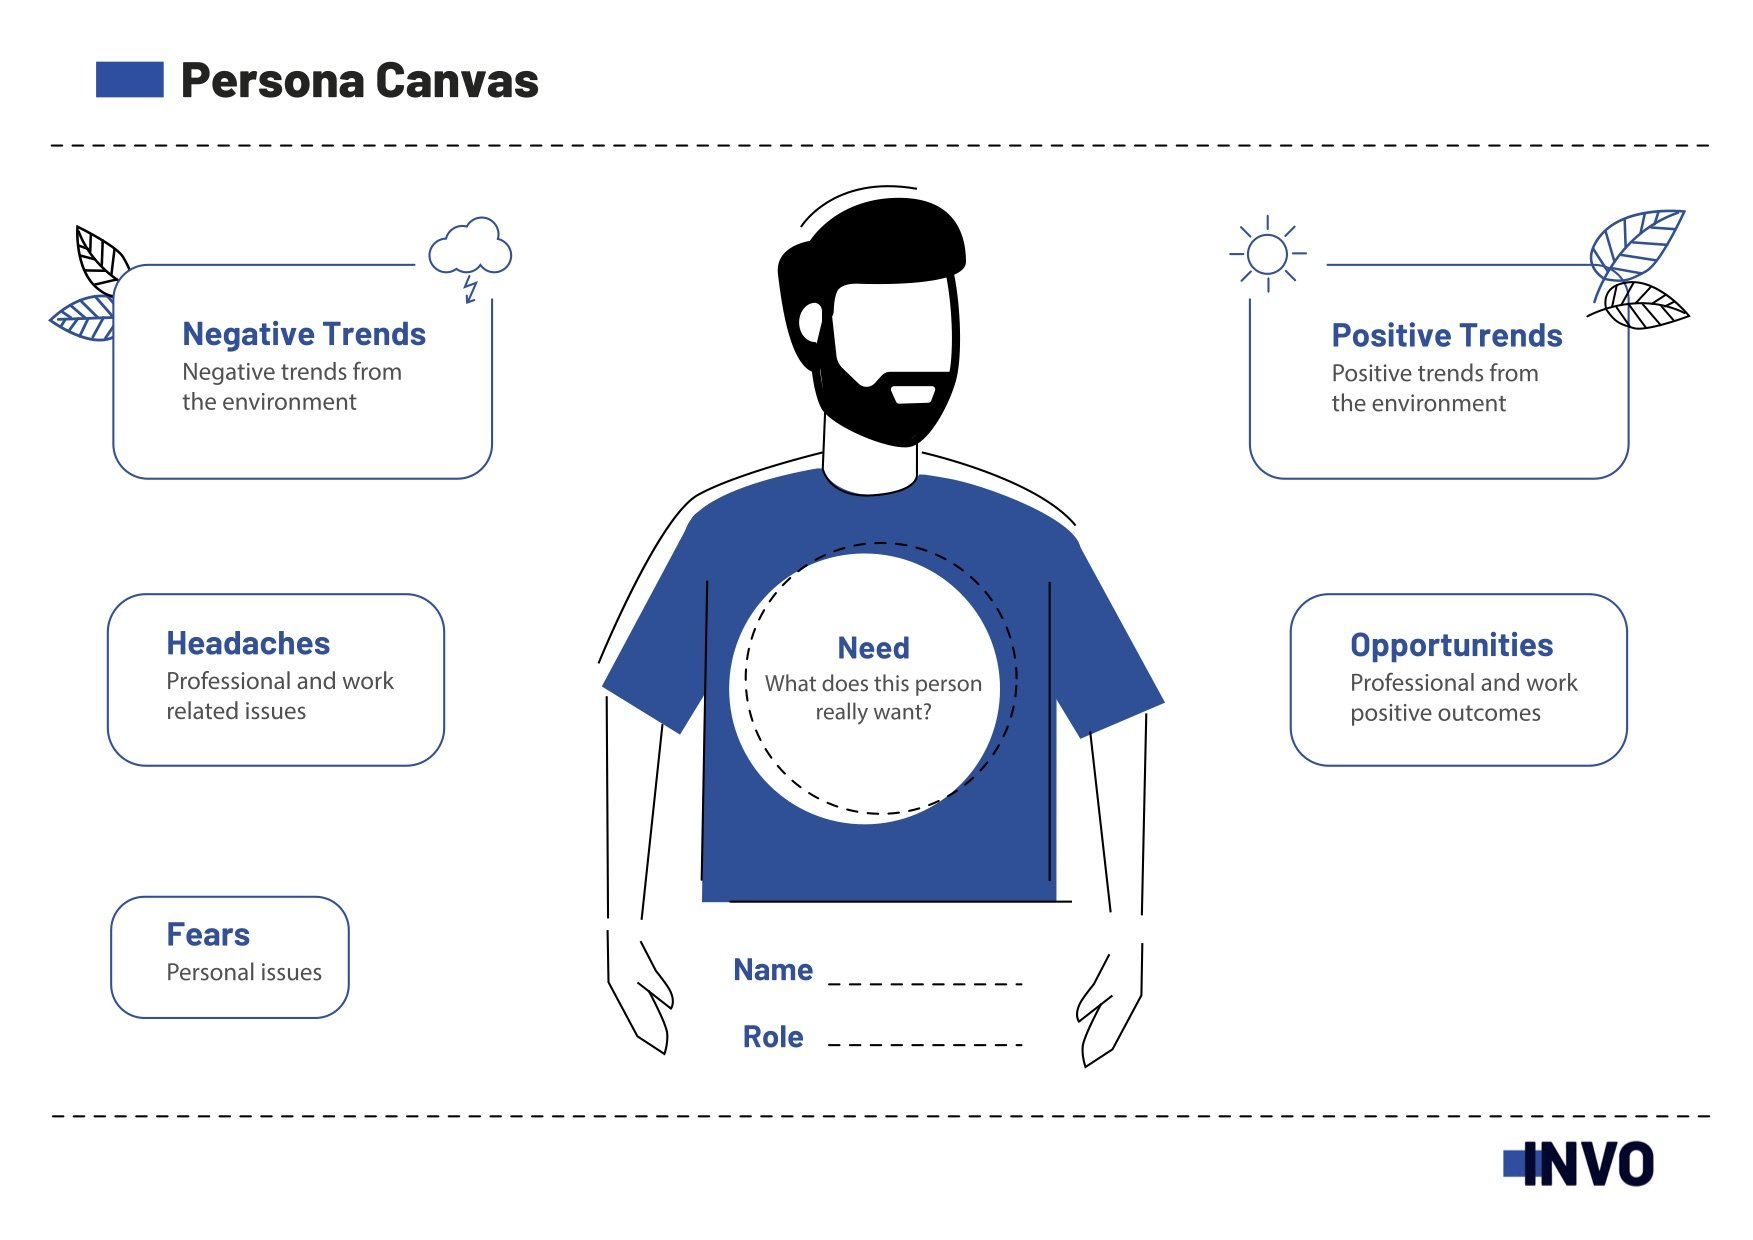 How to use the user persona canvas?